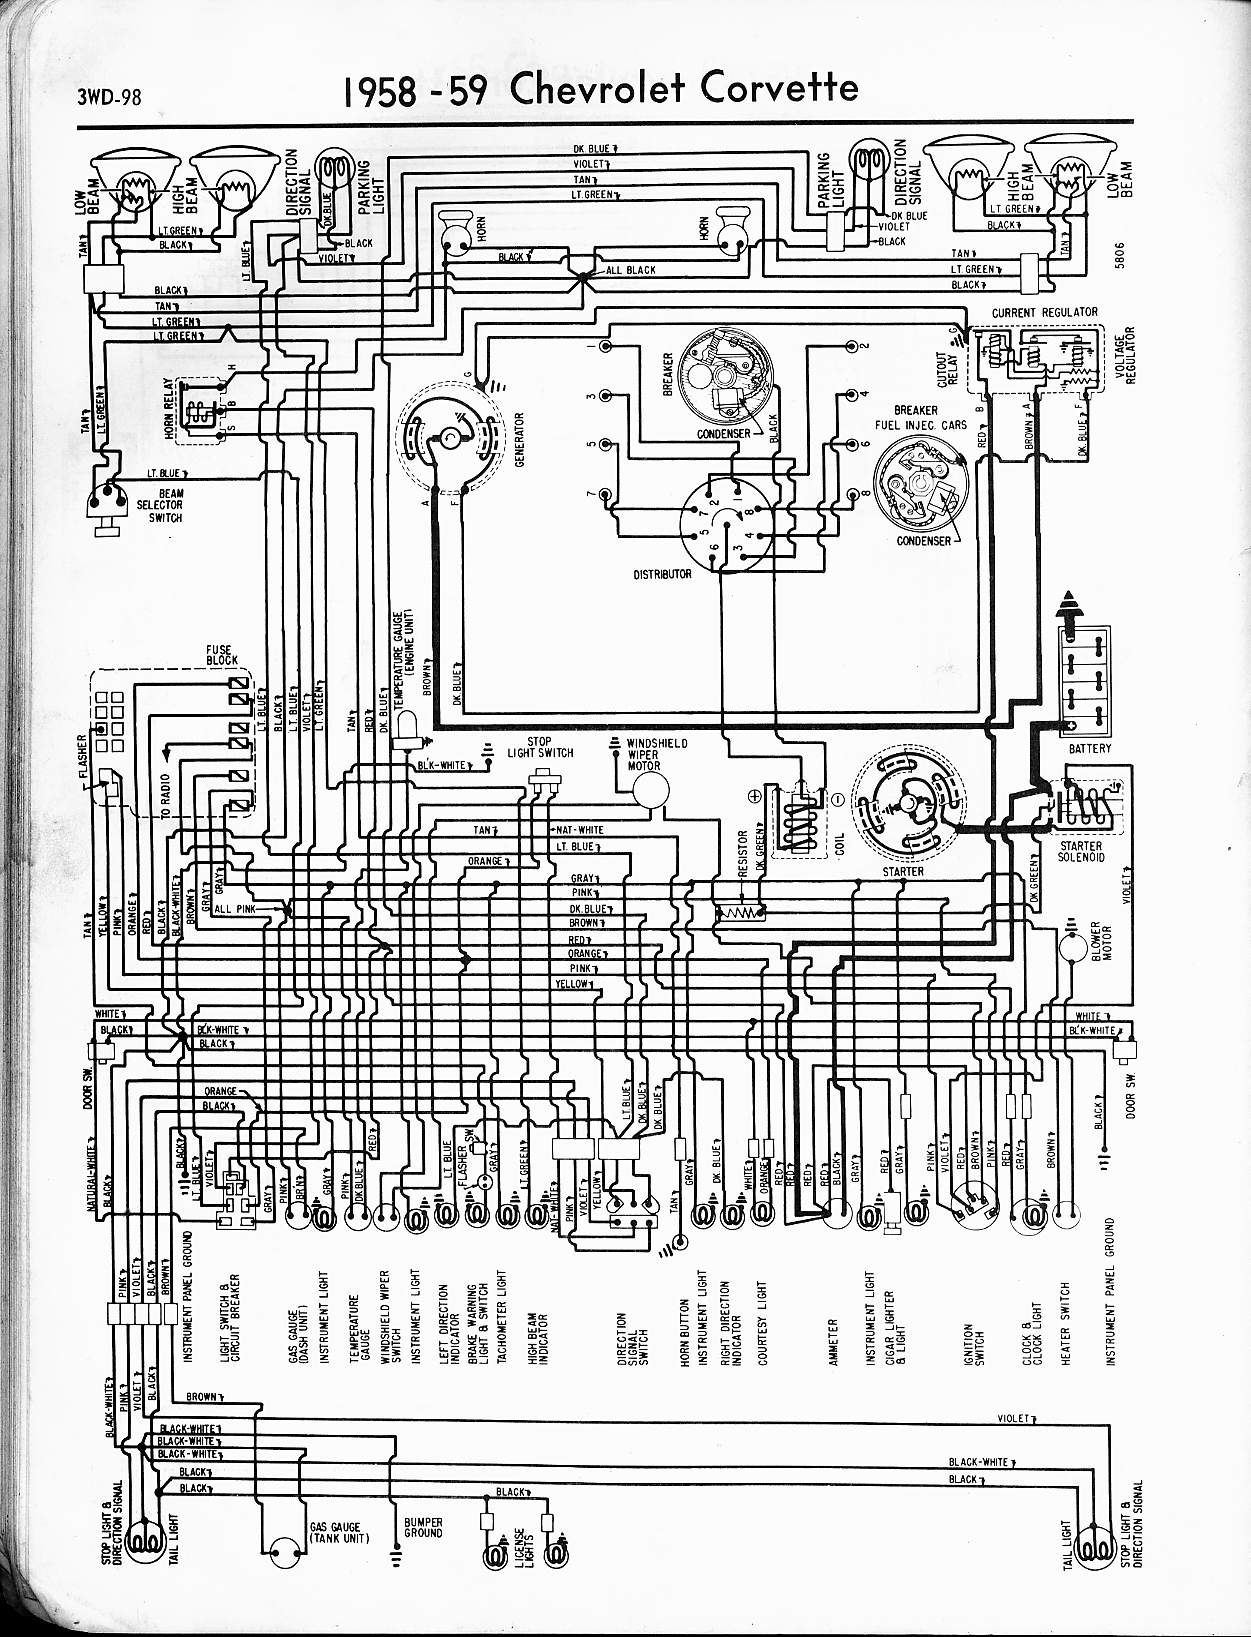 MWireChev58_3WD 098 57 65 chevy wiring diagrams 1959 chevy truck wiring diagram at webbmarketing.co